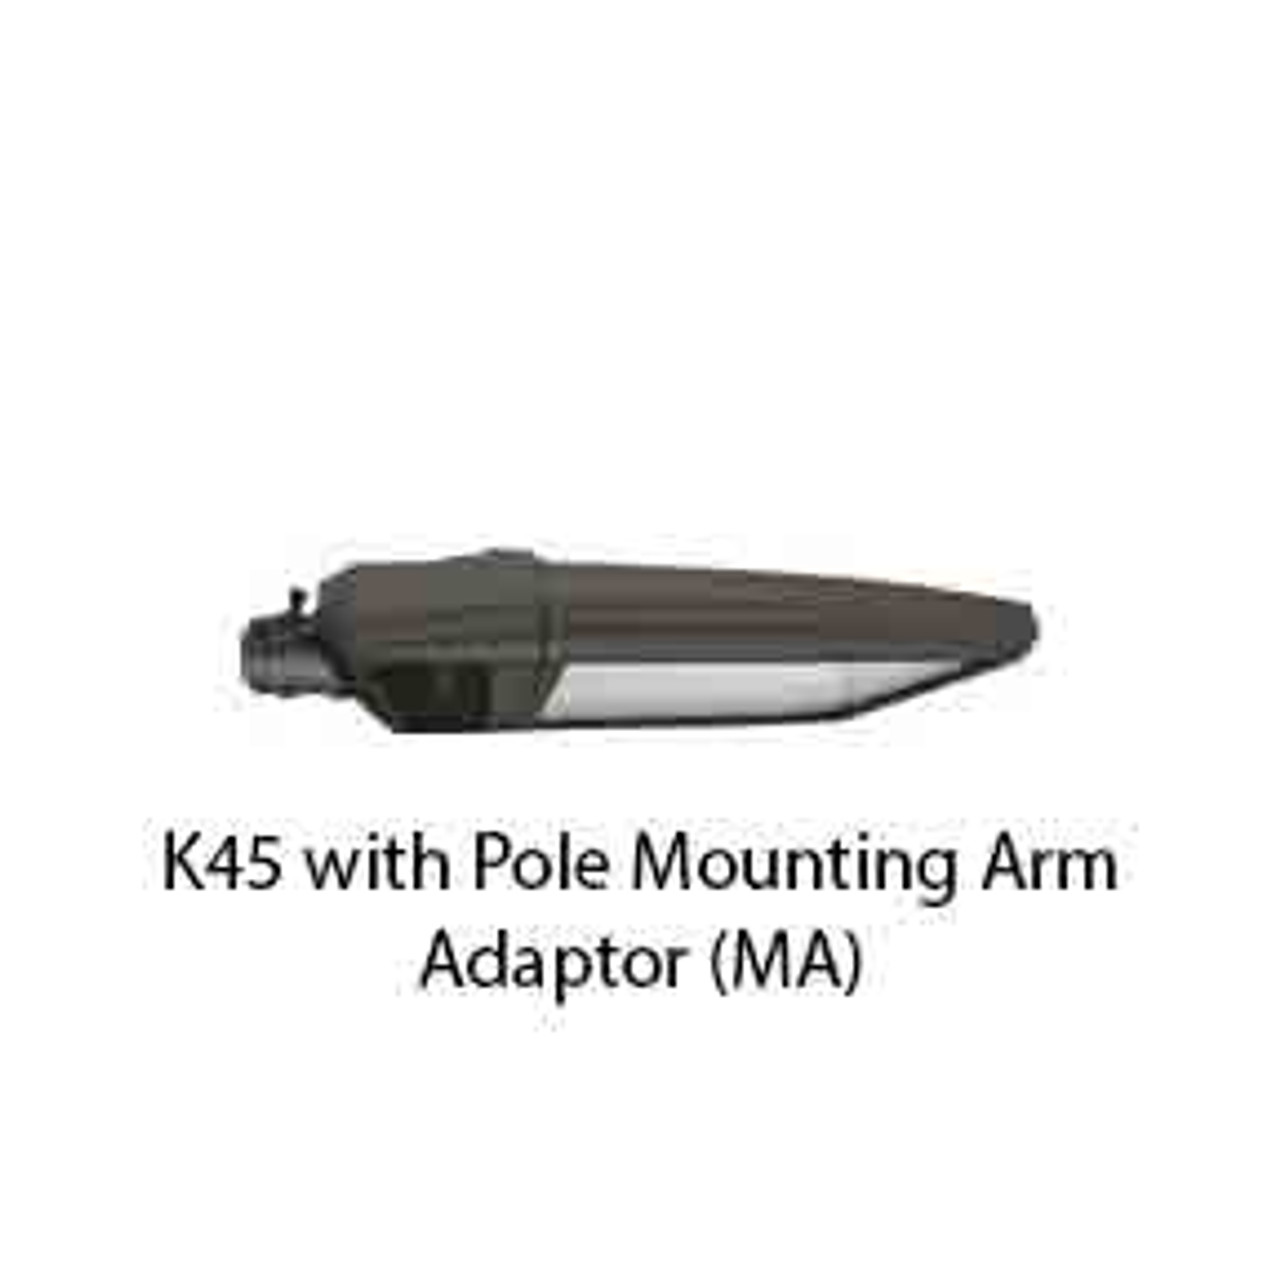 K45 with Pole Mounting Arm Adaptor (MA)